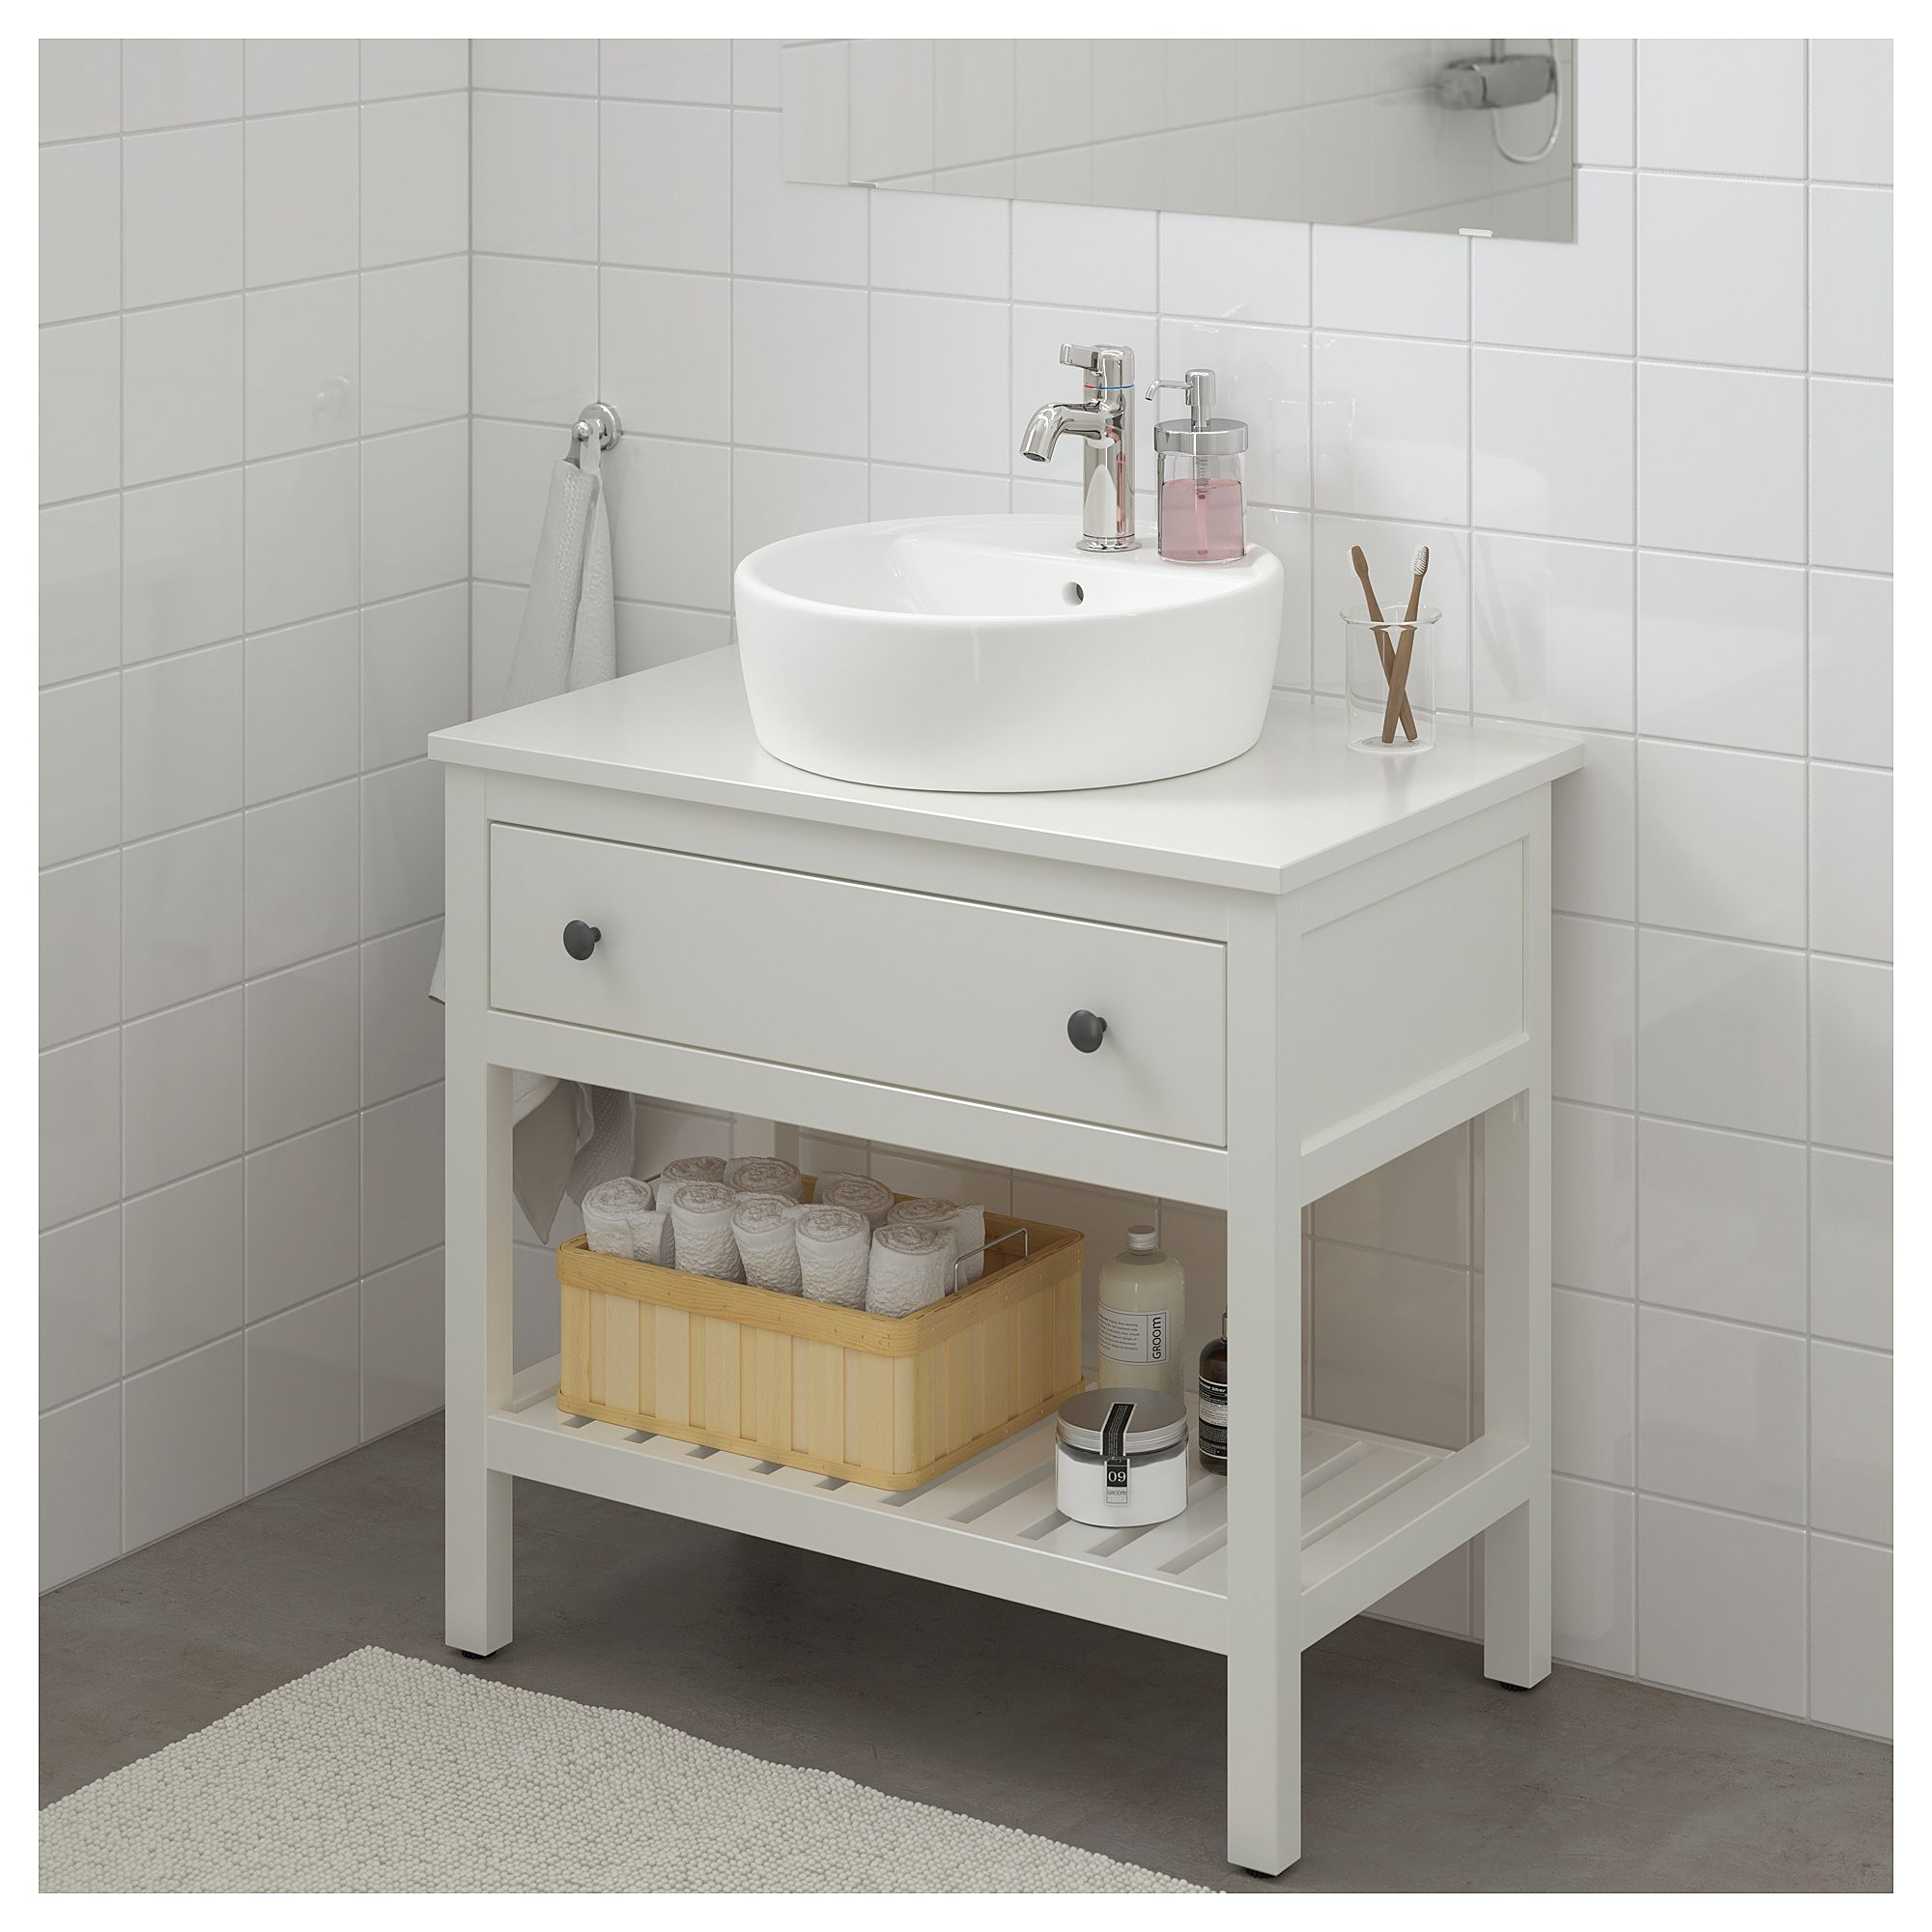 Hemnes Tornviken Open Wash Stand With 45 Wash Basin Ikea White Vanity Bathroom Sink Cabinet Ikea Hemnes